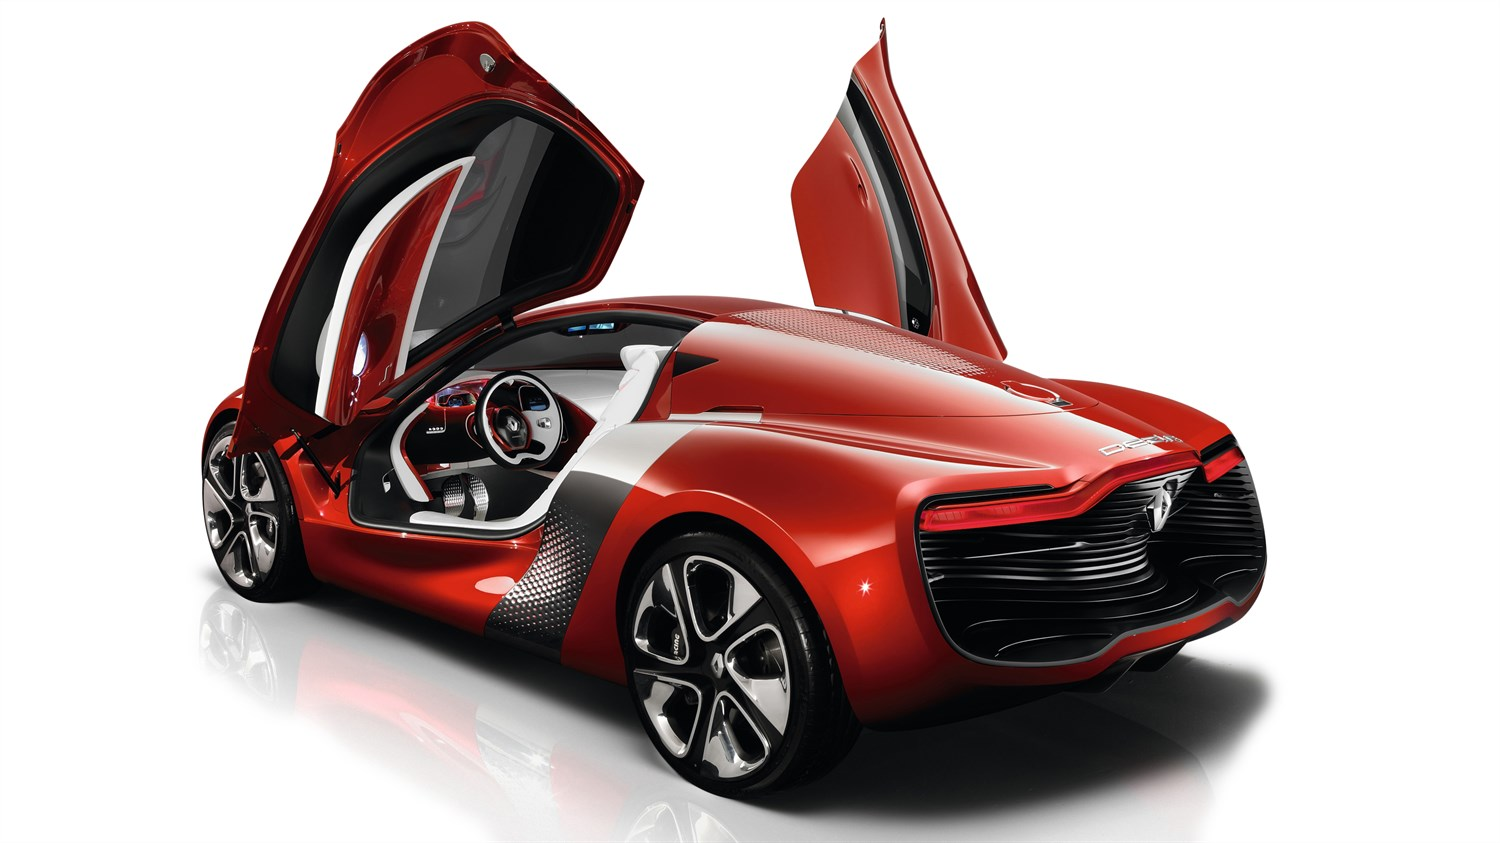 Renault DEZIR Concept - 3D view of vehicle - 3/4 rear view with side doors open